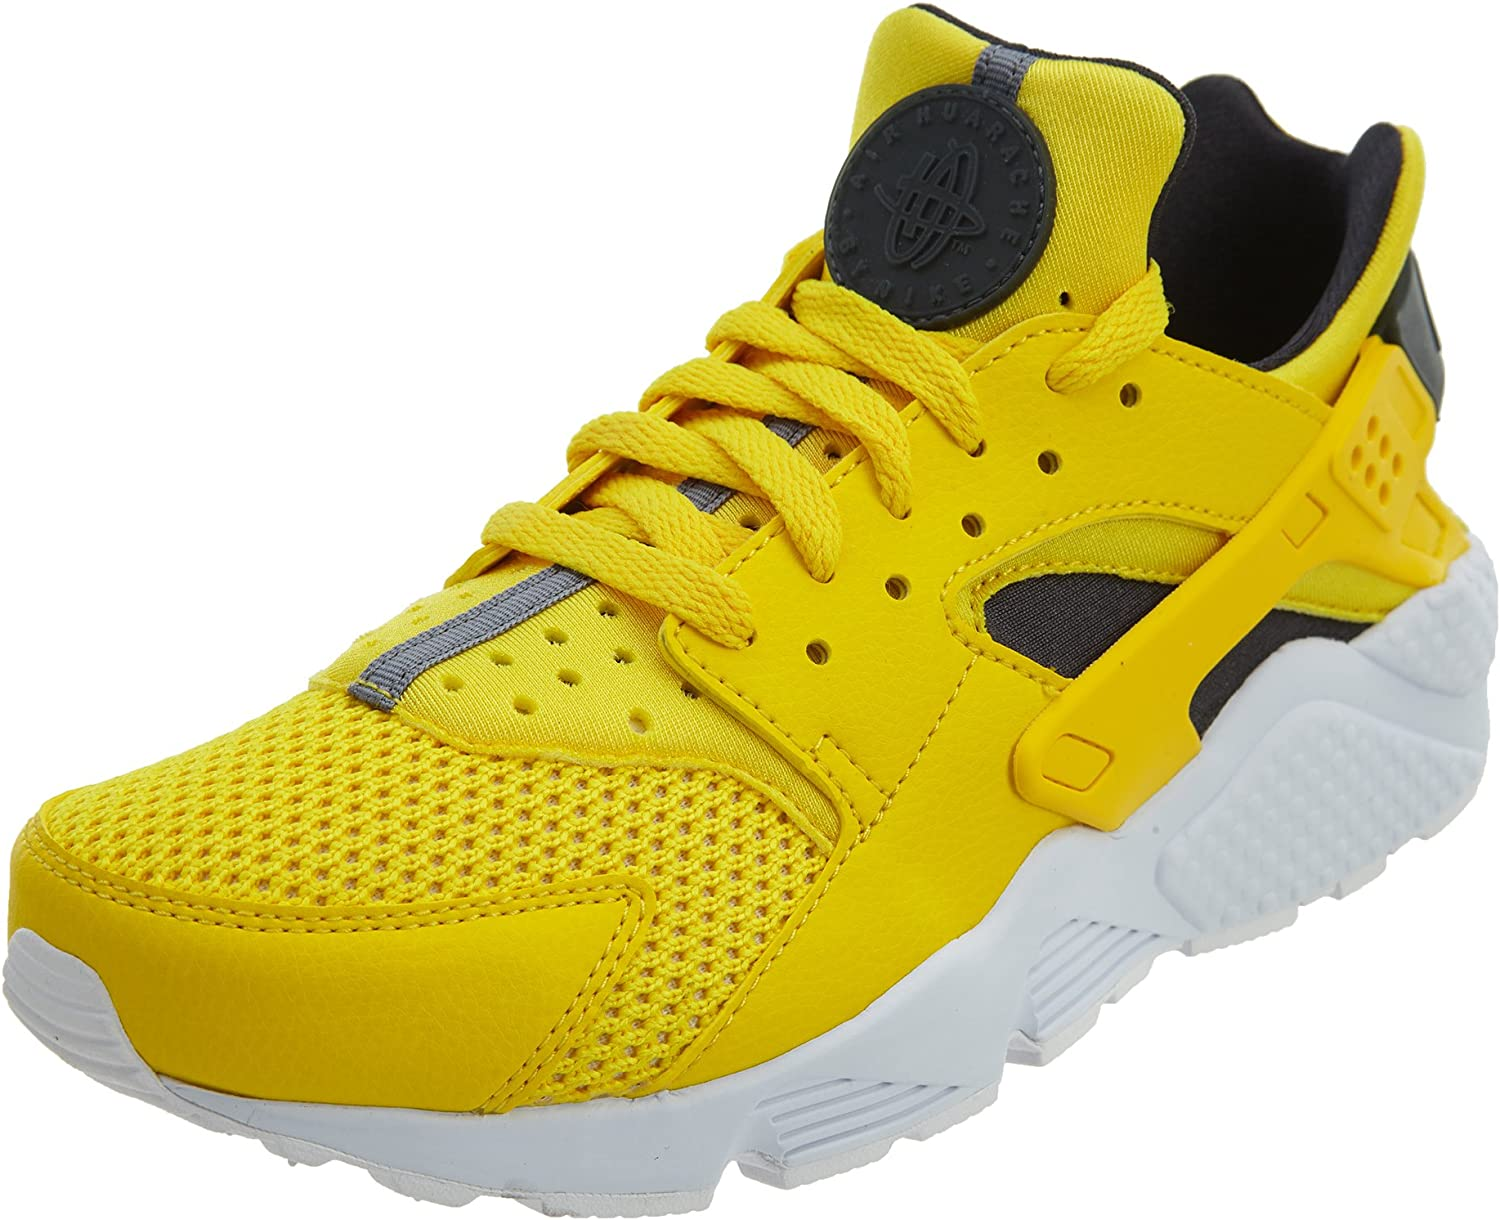 Nike Mens Air Huarache Synthetic Leather-Textile Trainers